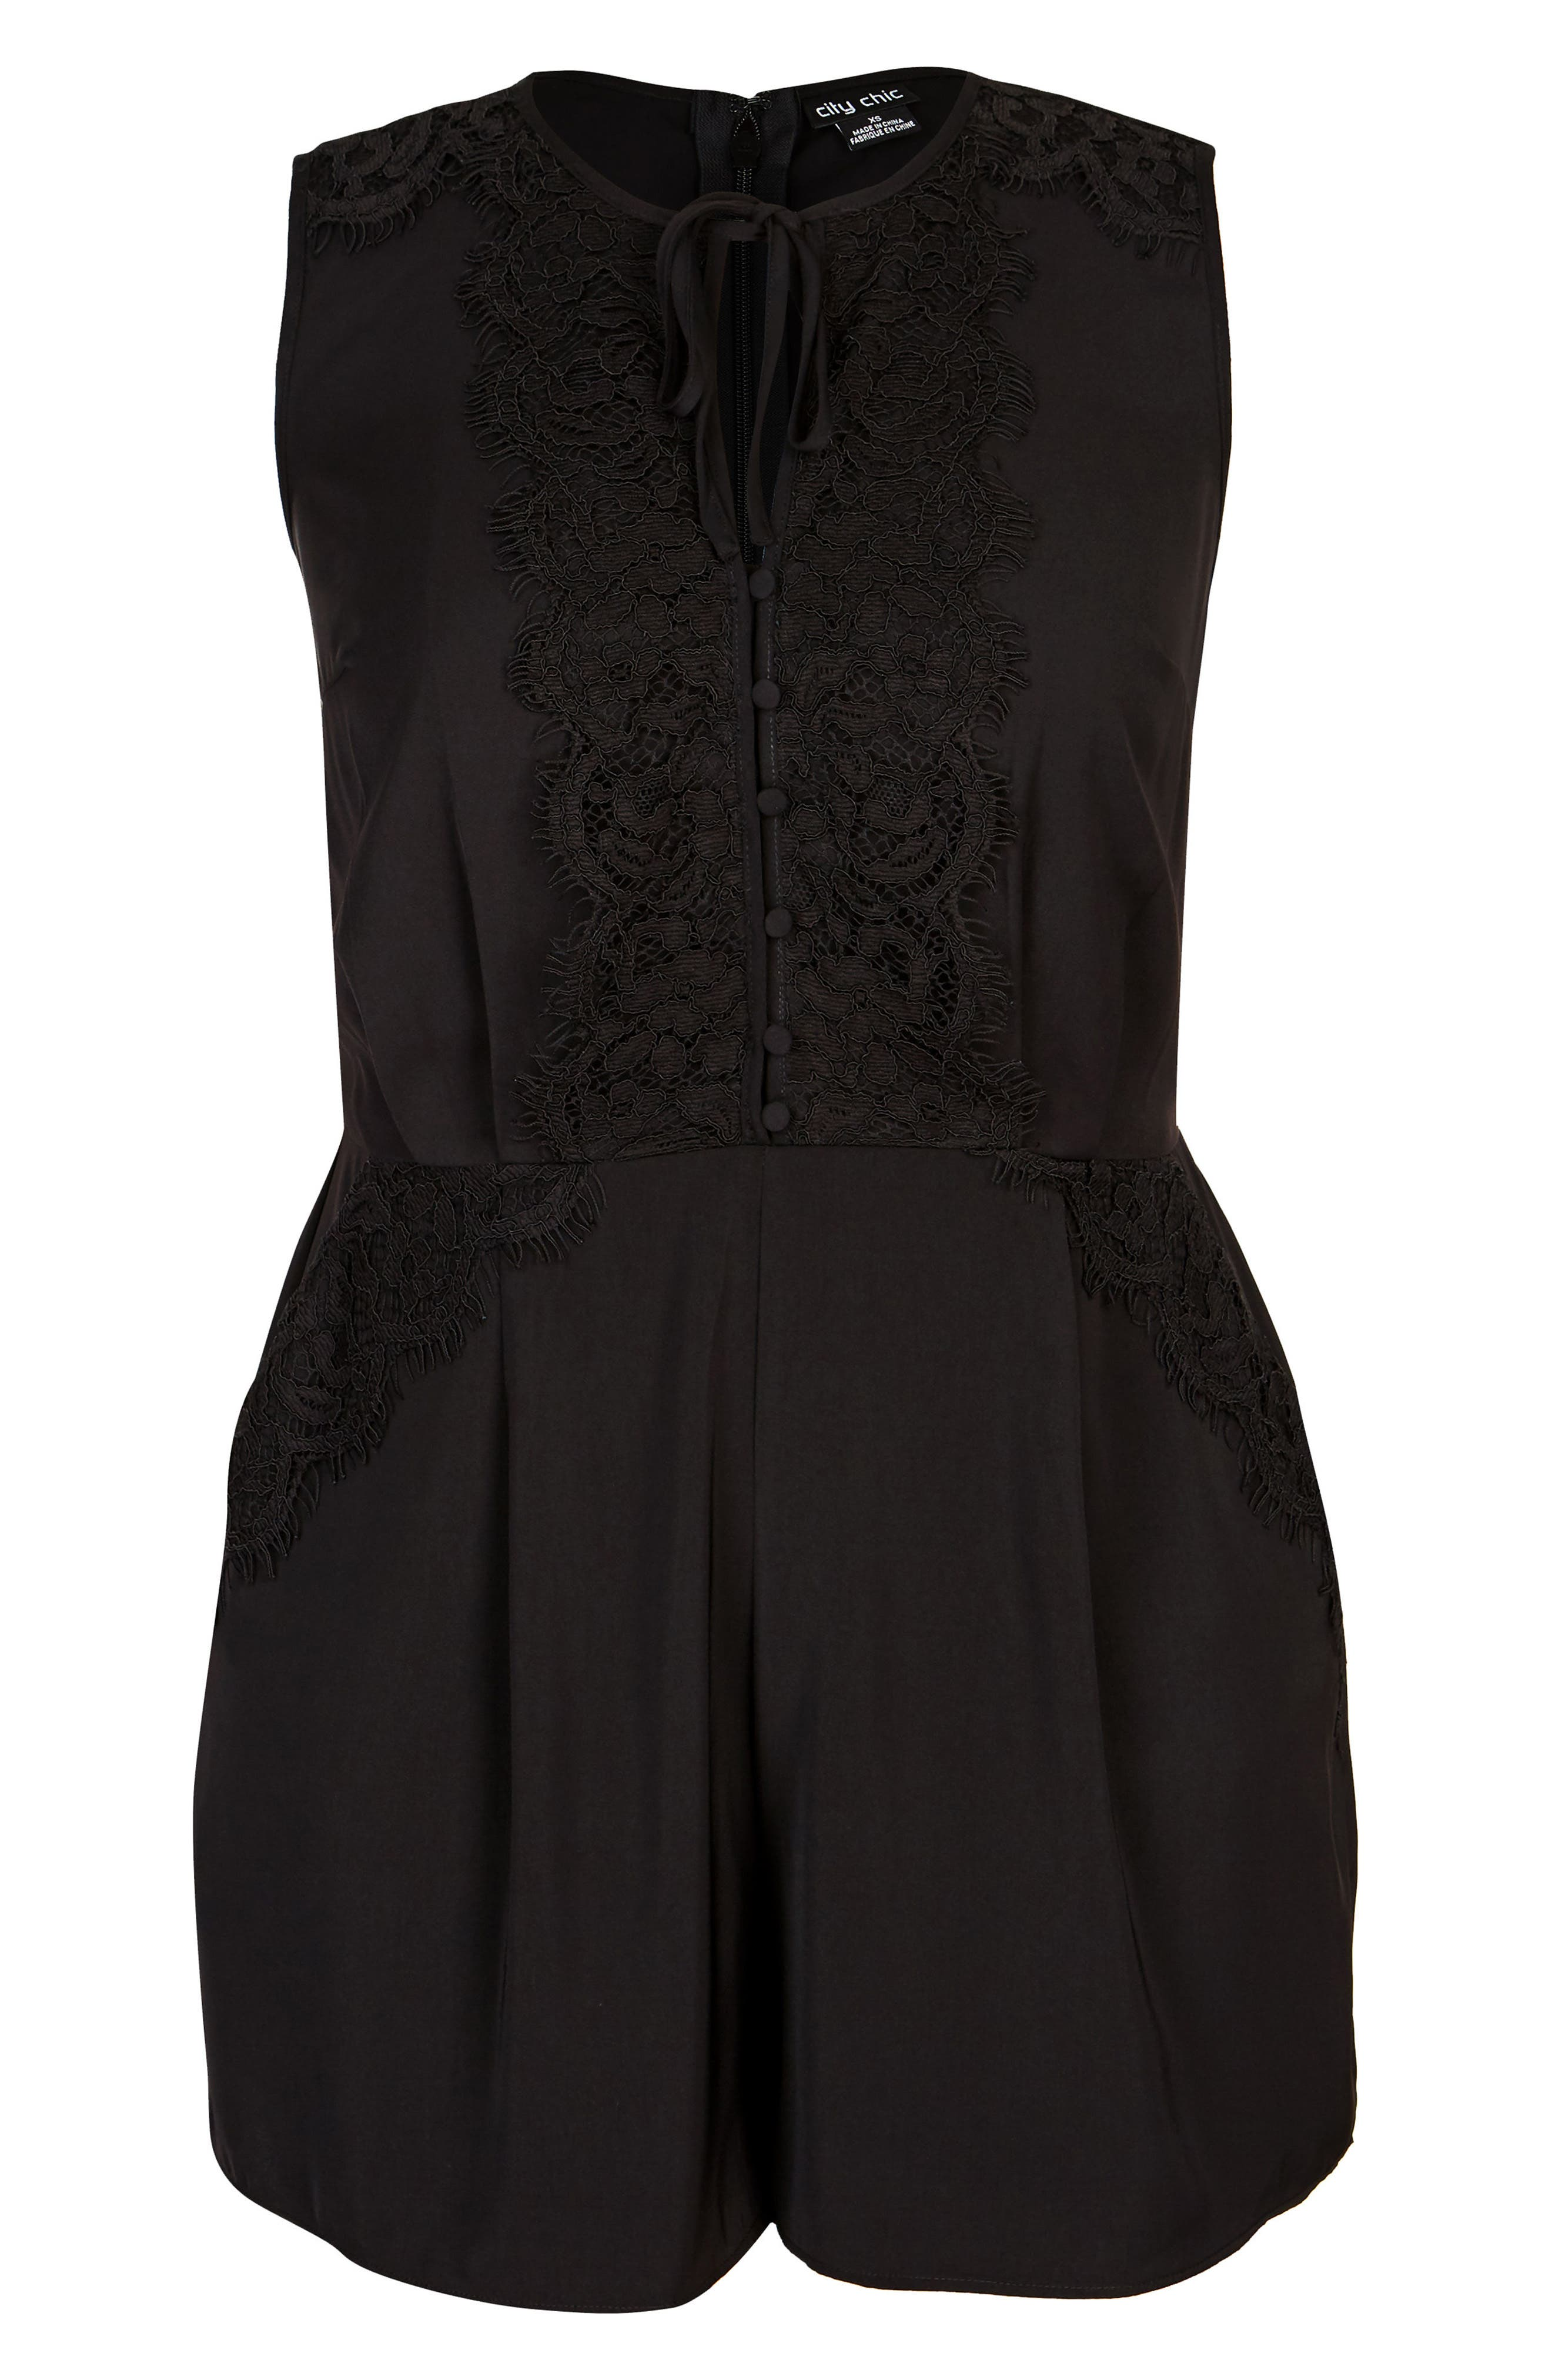 Lace Dream Playsuit,                             Alternate thumbnail 3, color,                             BLACK